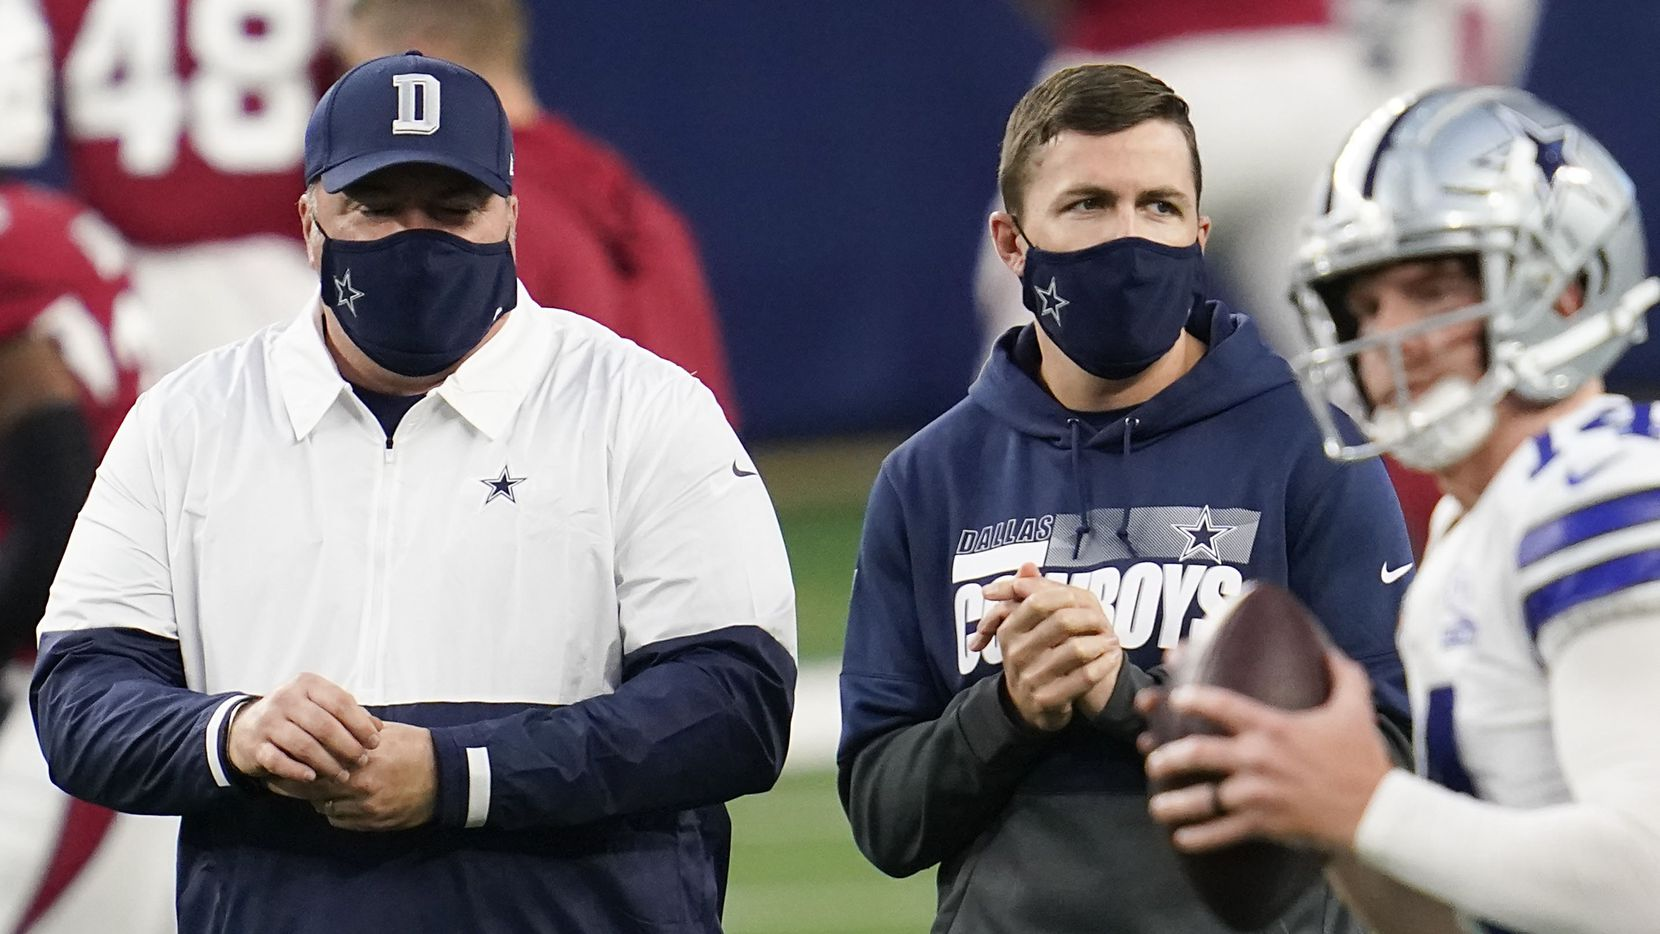 Dallas Cowboys head coach Mike McCarthy (left) and offensive coordinator coach Kellen Moore watch quarterback Andy Dalton warm up before an NFL football game against the Arizona Cardinals at AT&T Stadium on Monday, Oct. 19, 2020, in Arlington.